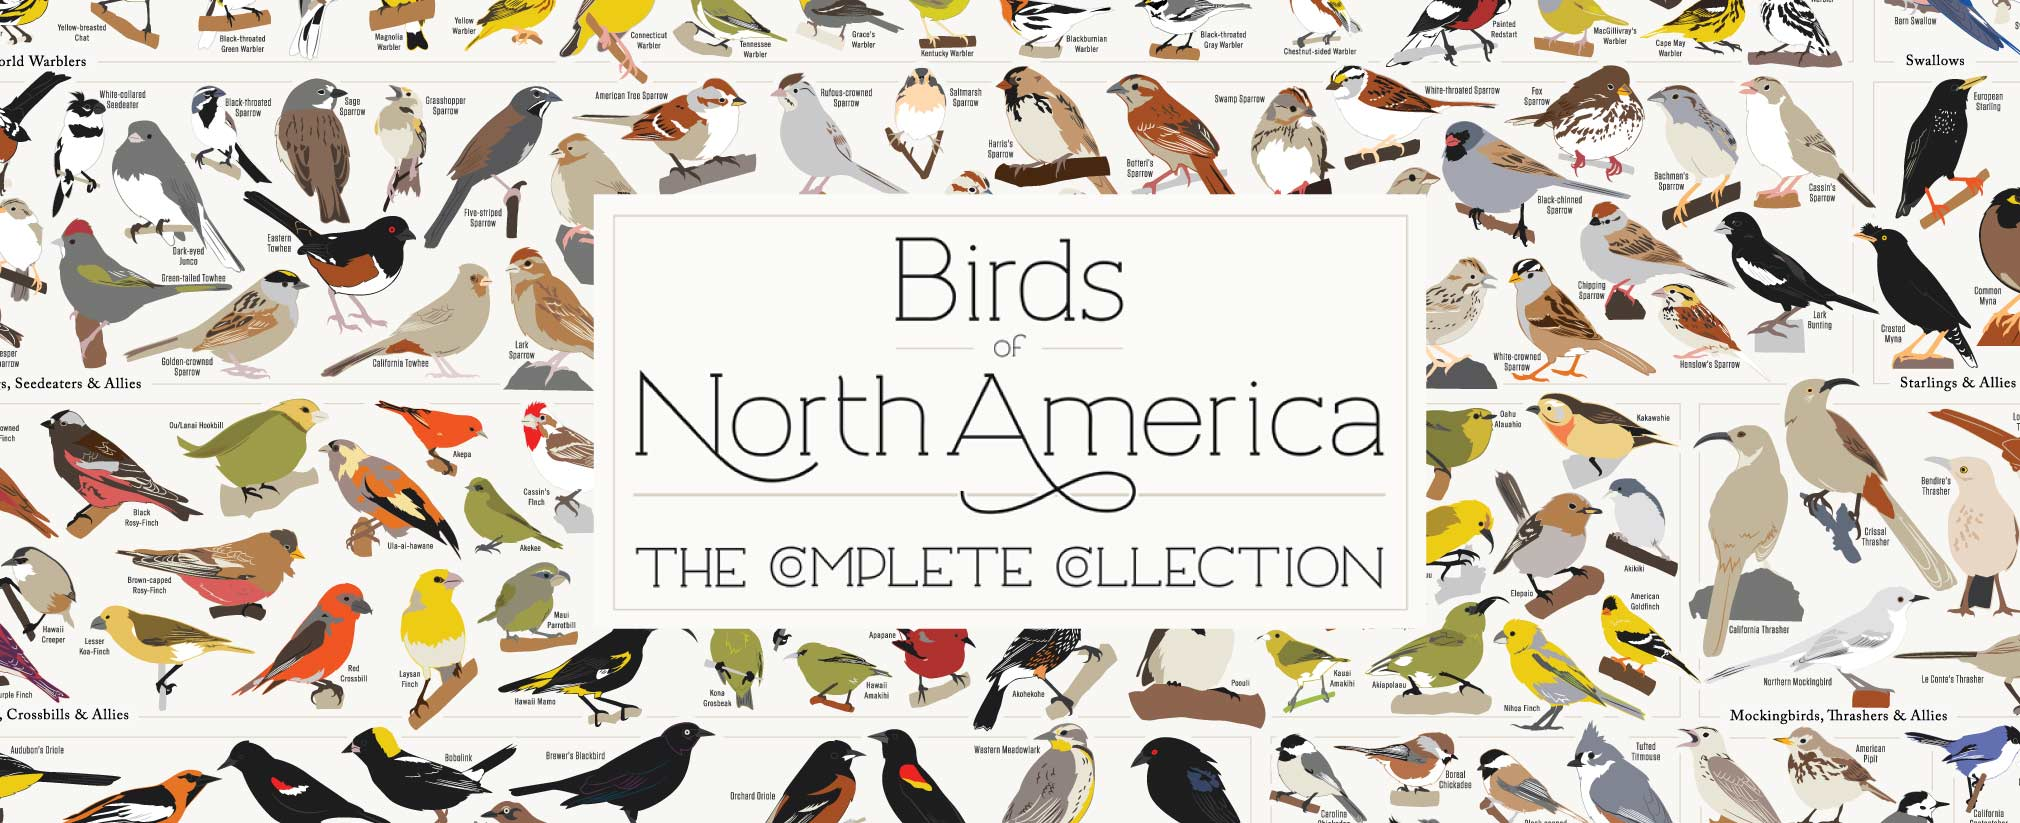 birds-of-north-america-poster-the-complete-collecrtion